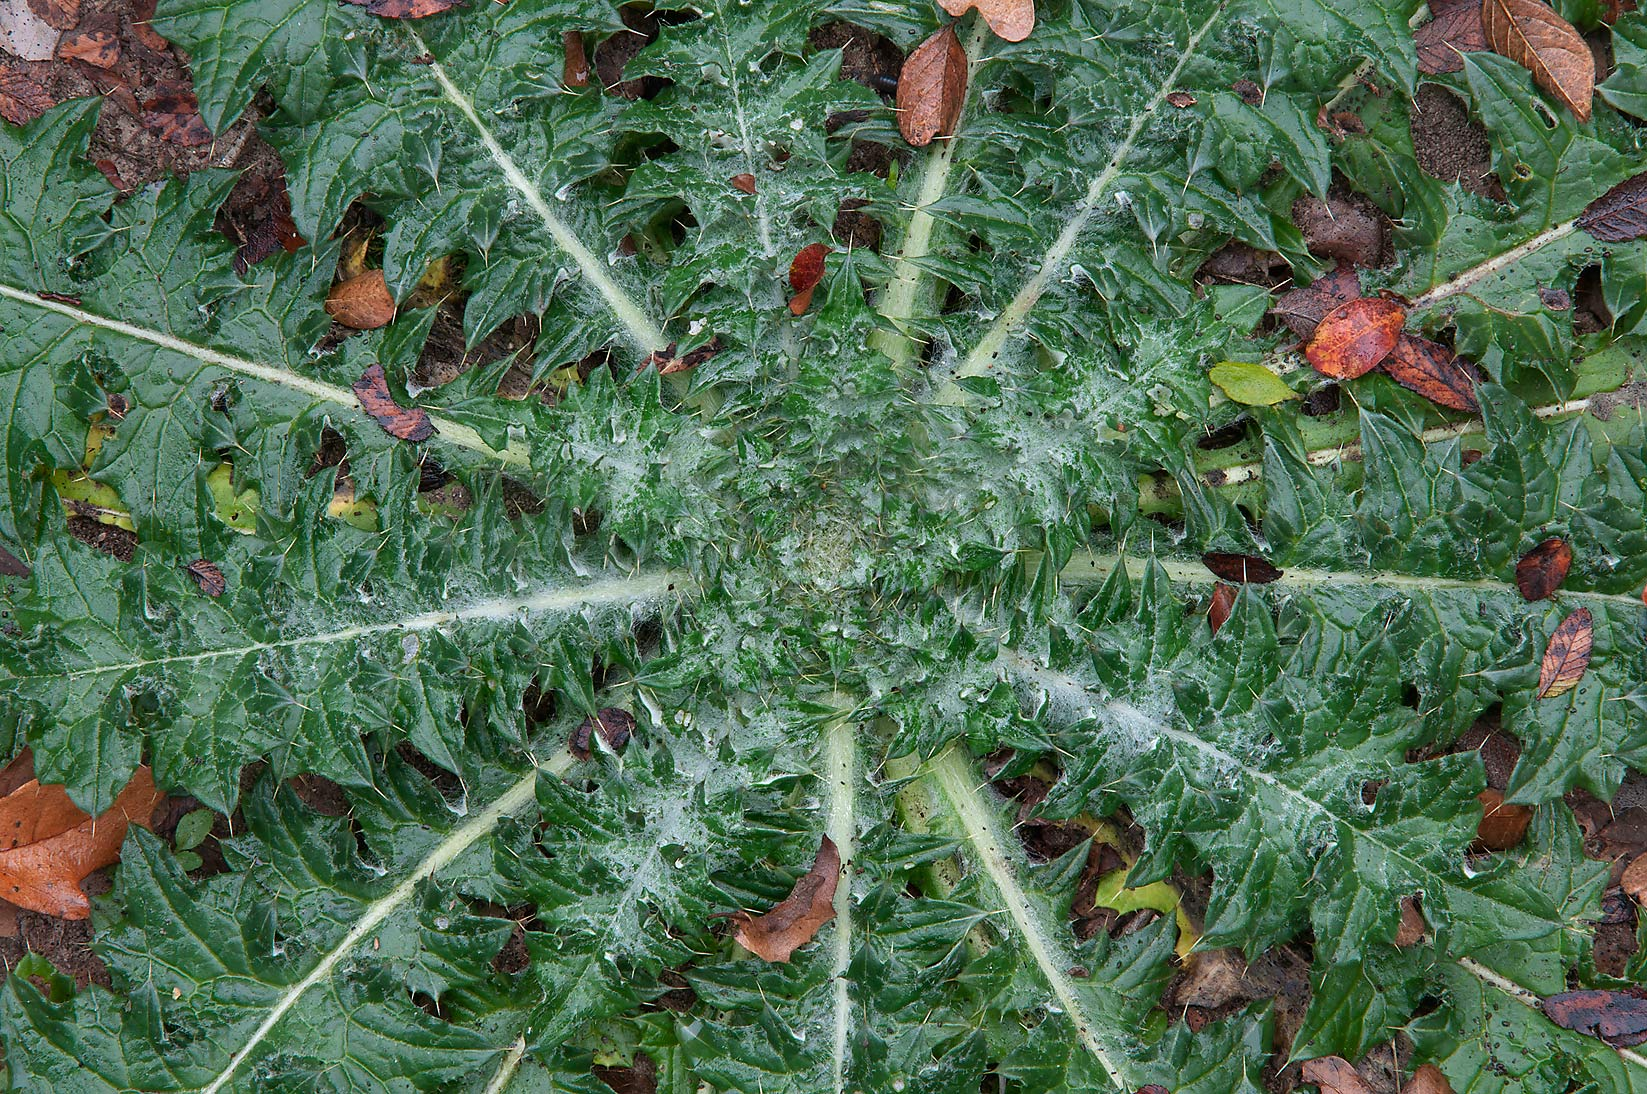 Winter rosette of thistle in Washington Cemetery. Washington, Texas